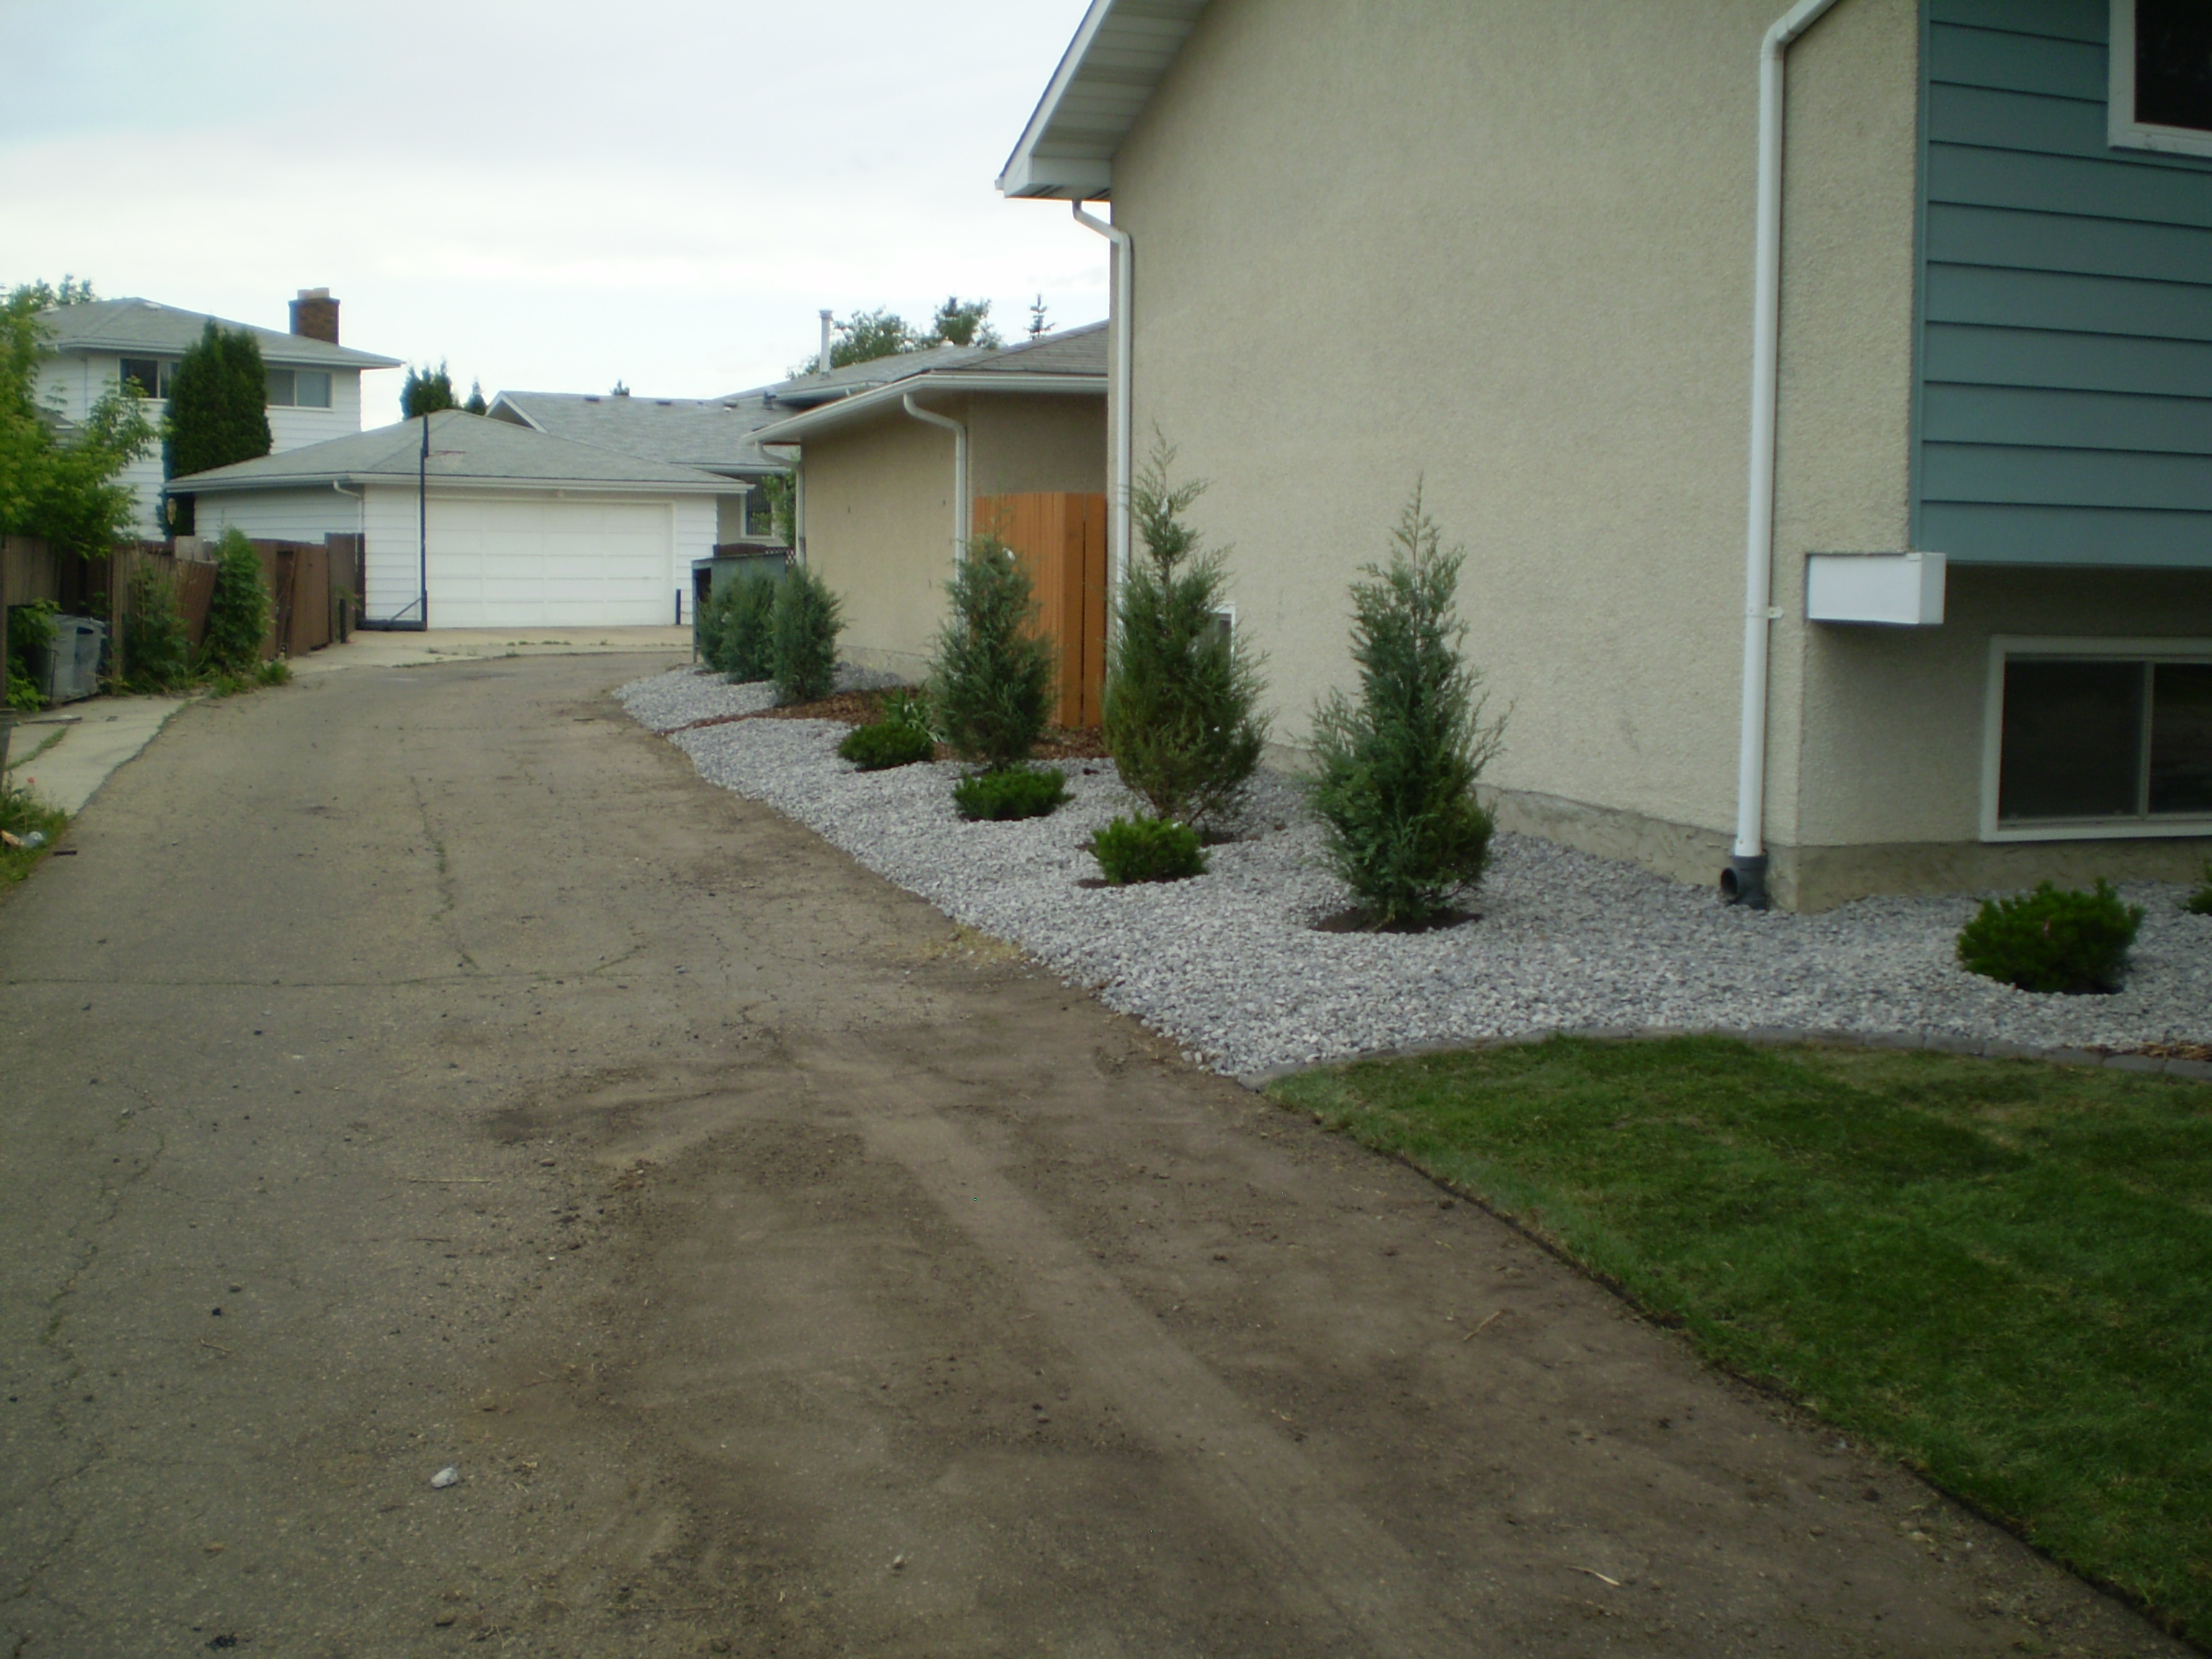 Landscaping Property Lines Pictures : Between property lines whitemud landscaping and garden